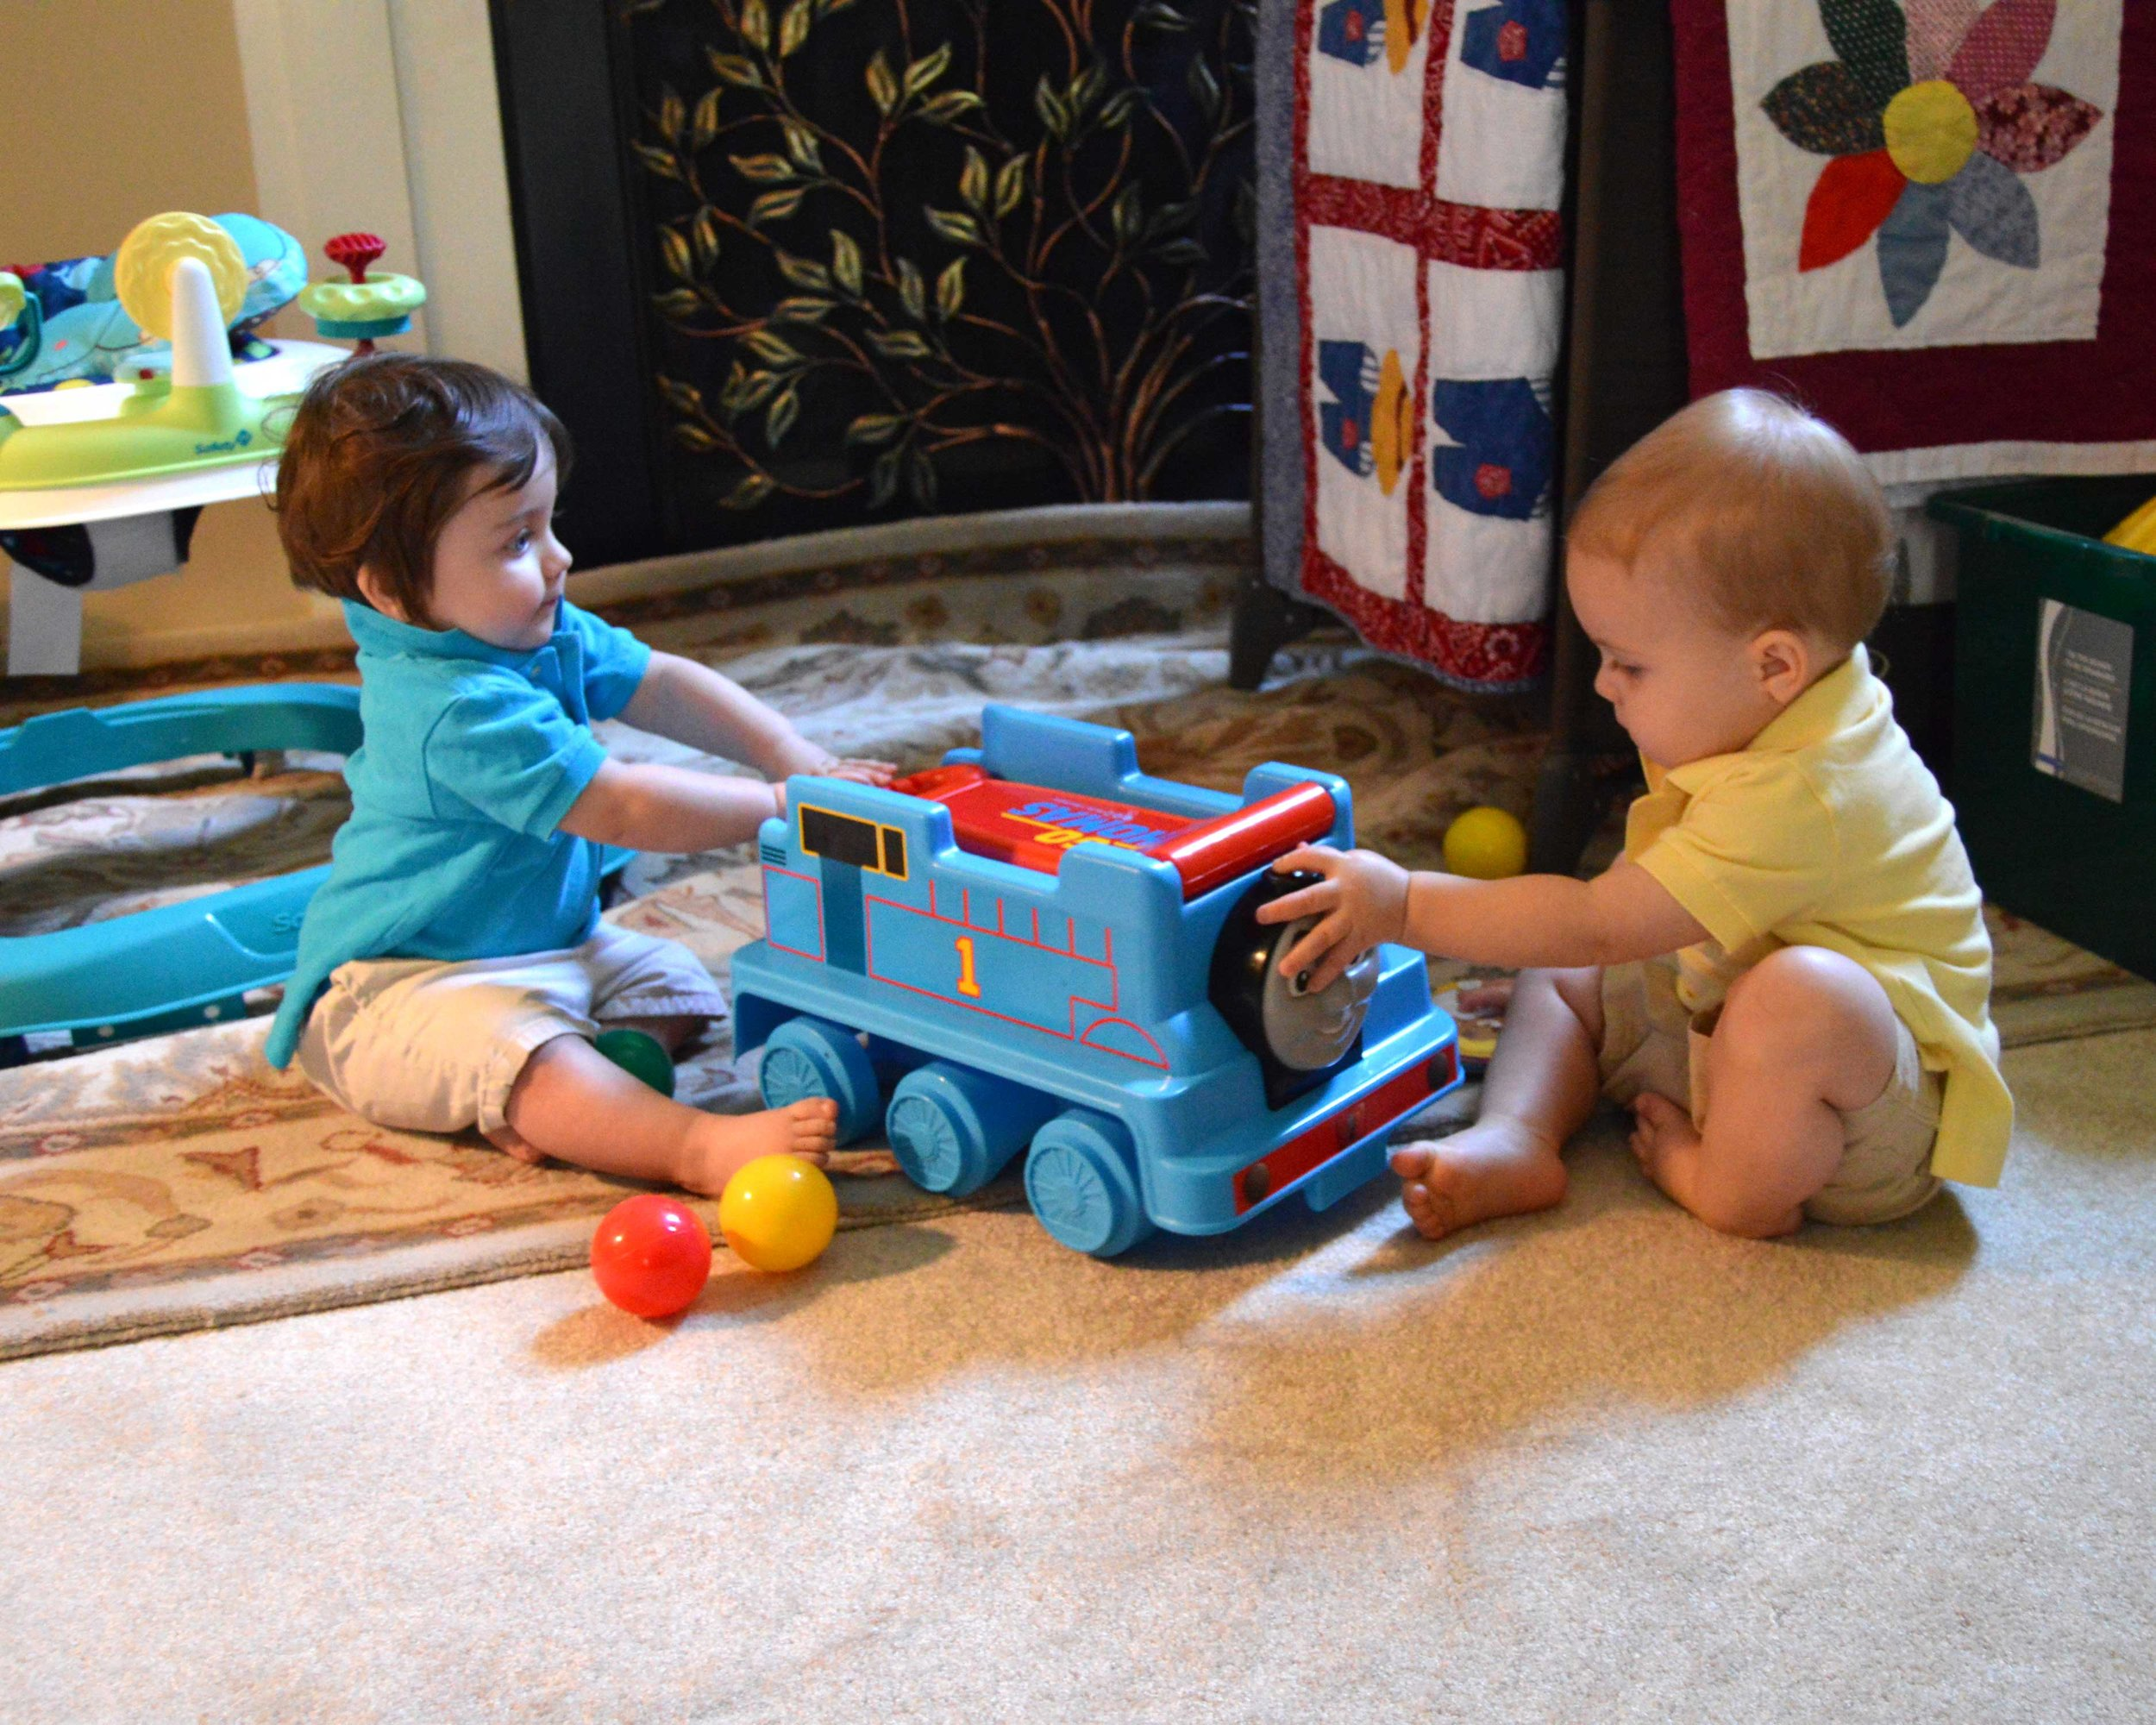 Benjamin playing with his friend, Jack